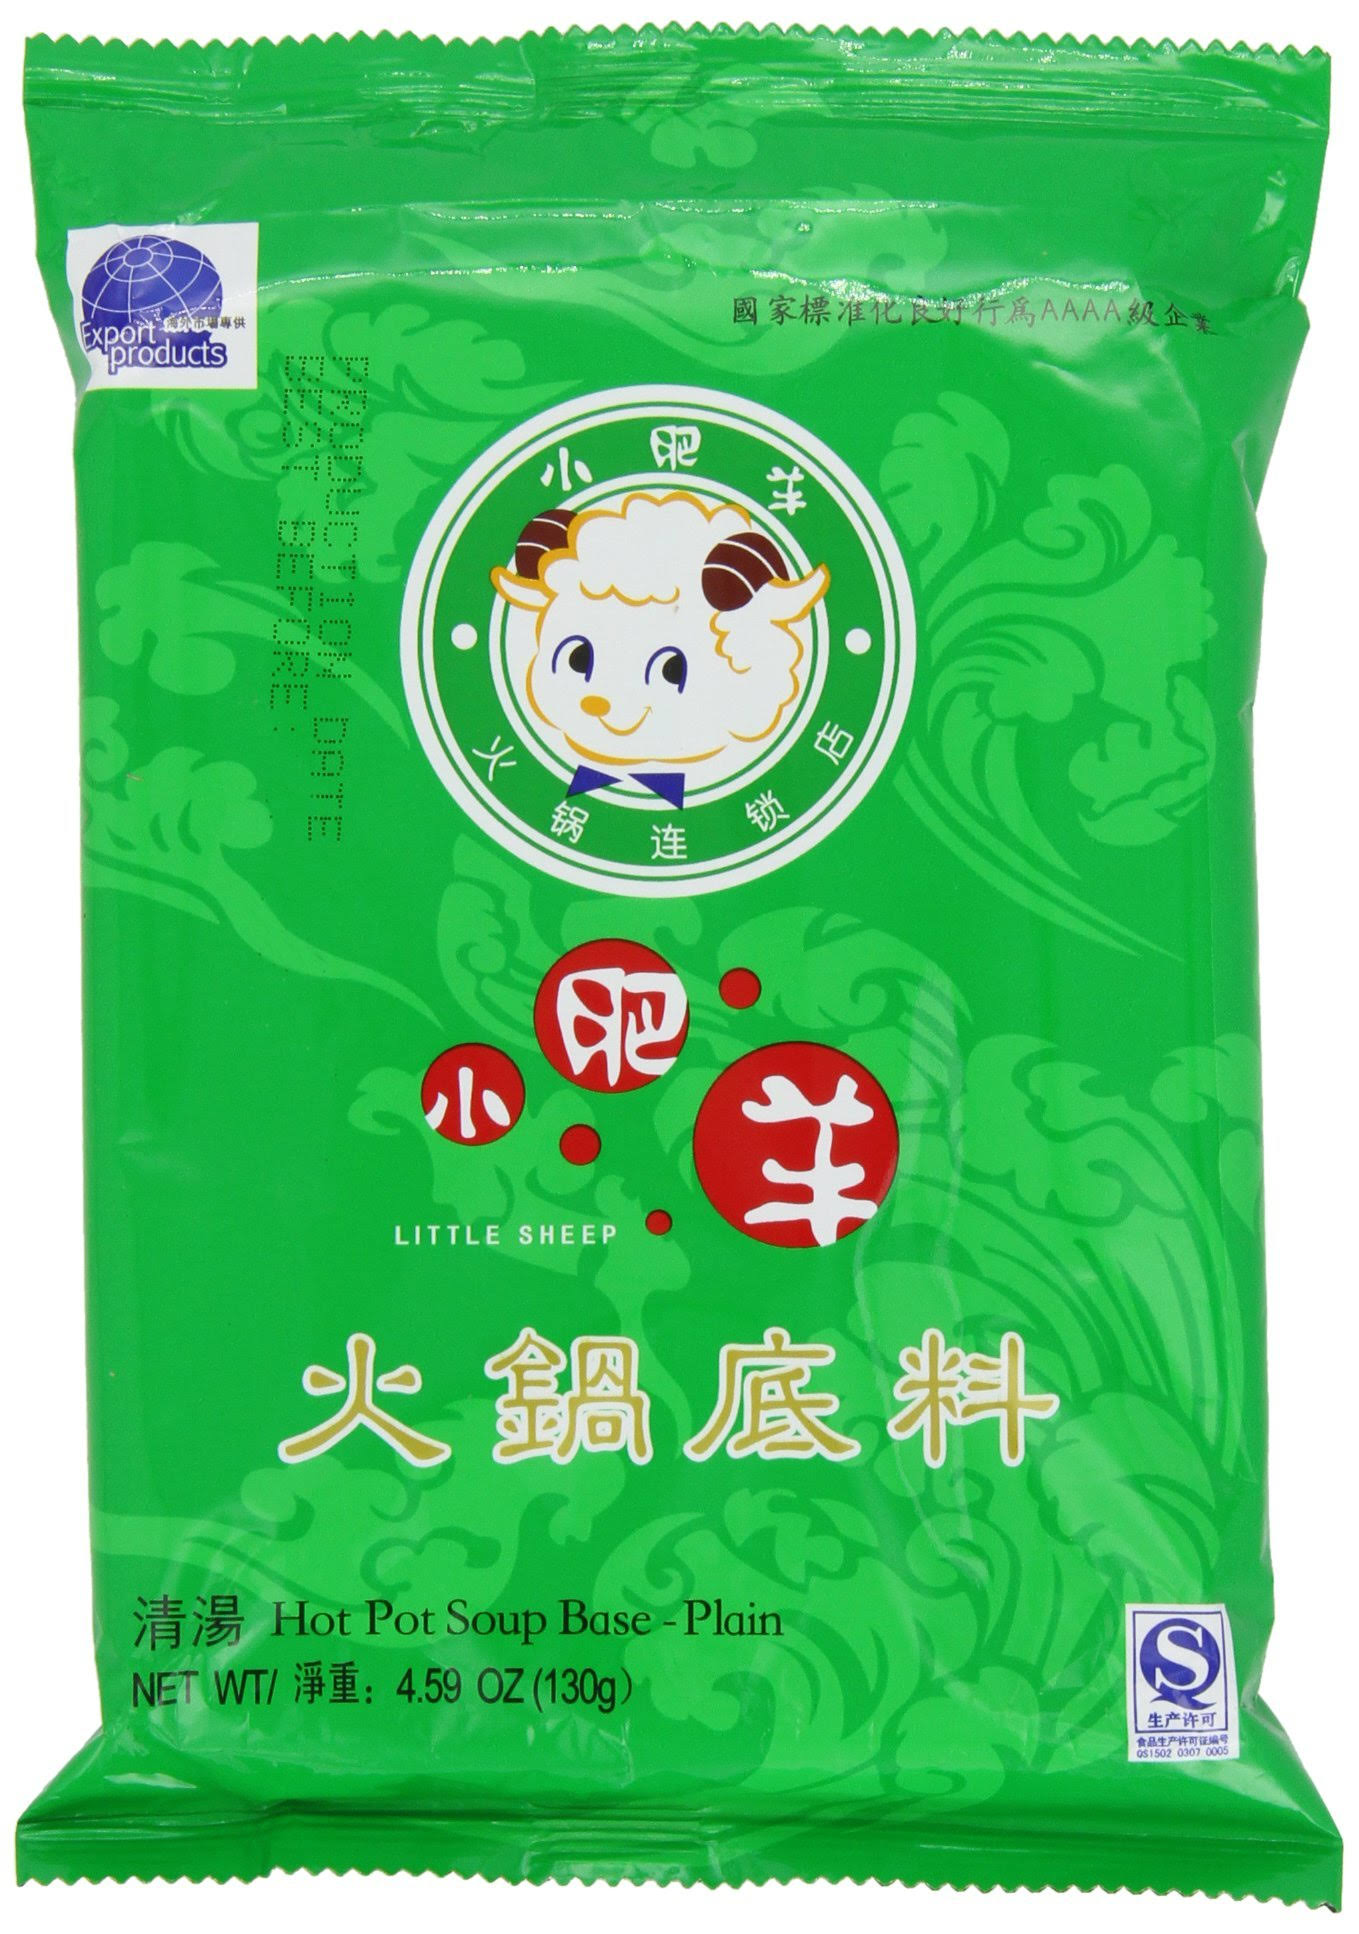 小肥羊清汤火锅底料 Little Sheep Hot Pot Soup Base - Plain, 130g